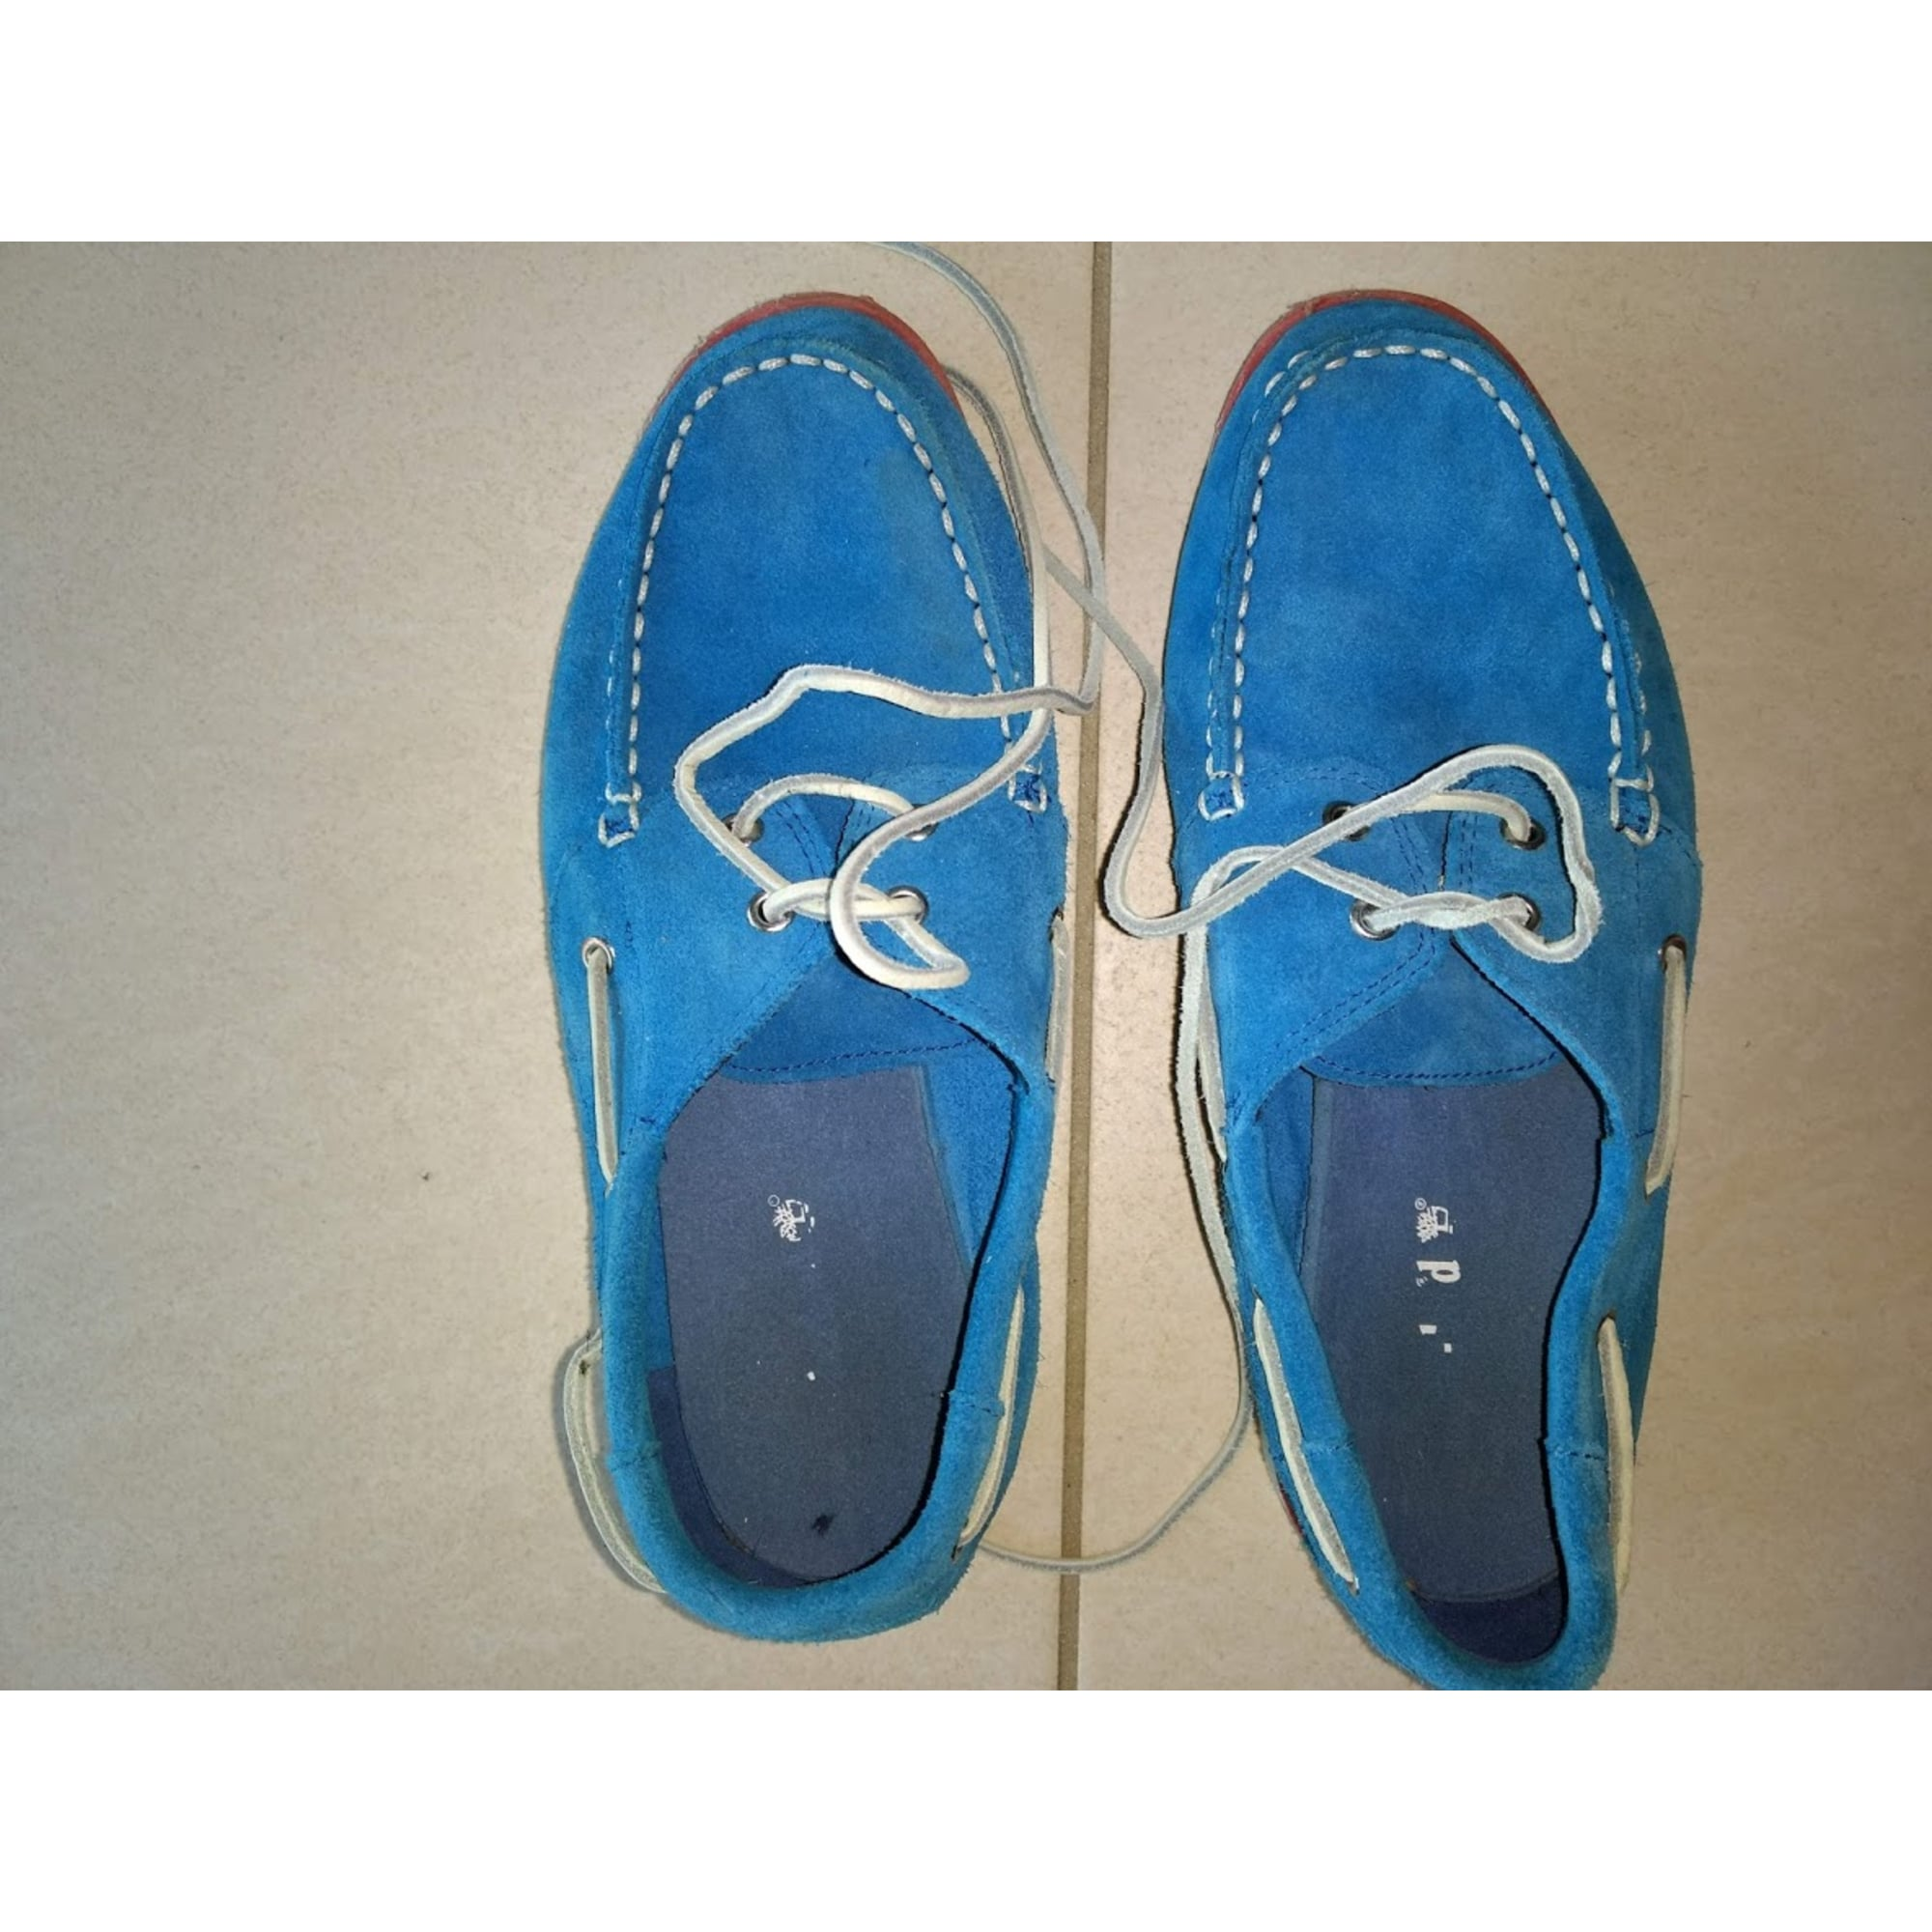 Loafers TIMBERLAND Blue, navy, turquoise